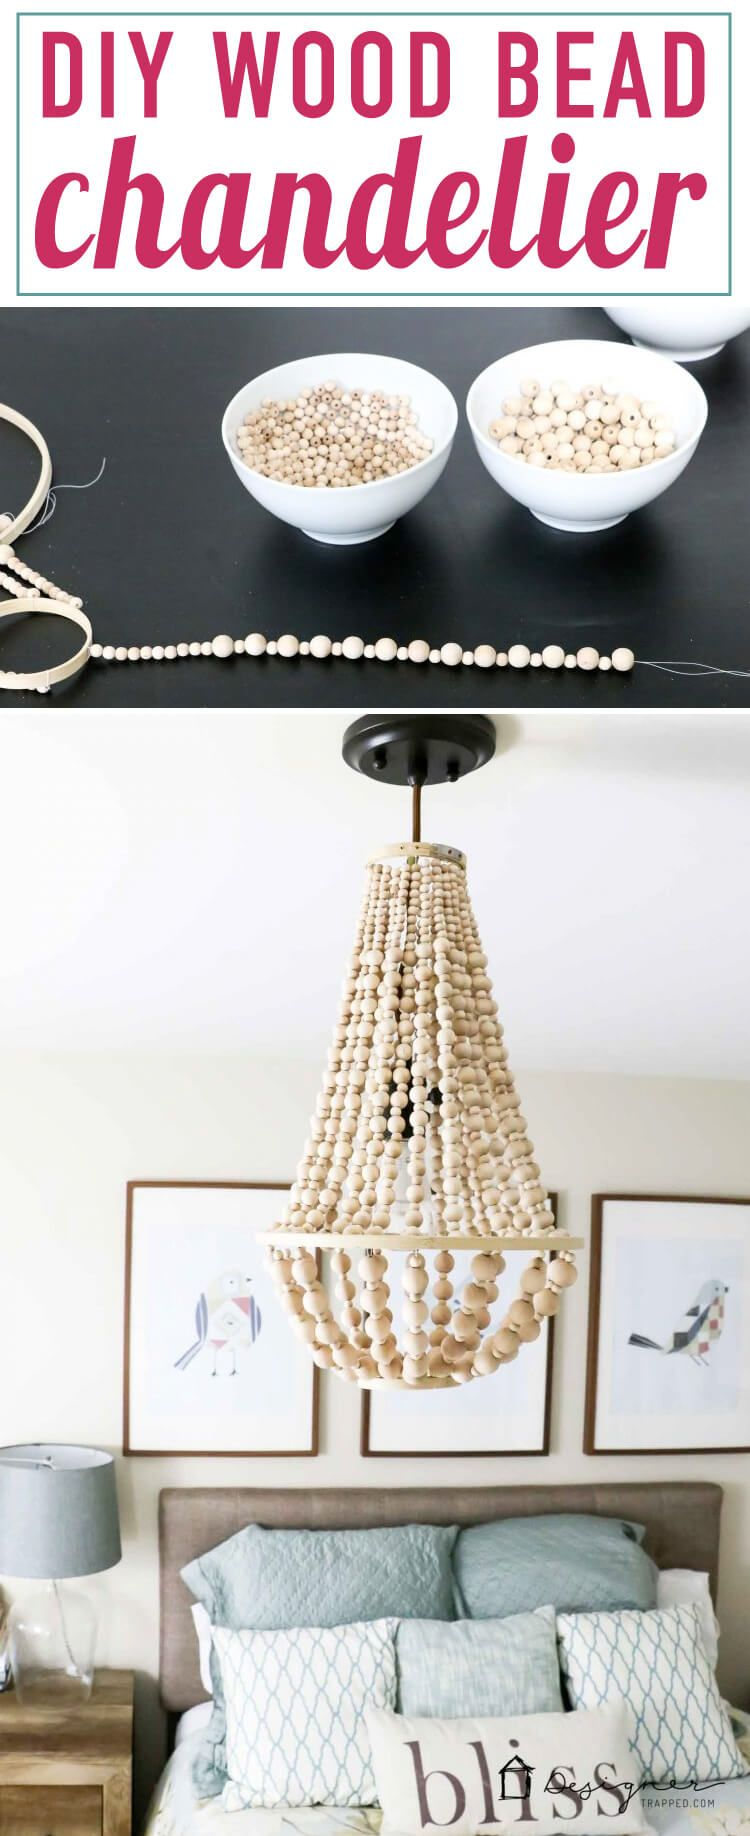 I Love This Diy Chandelier Made From Wood Beads It Looks Like May Take A While But Doesn T Look Hard Ve Wanted Bead